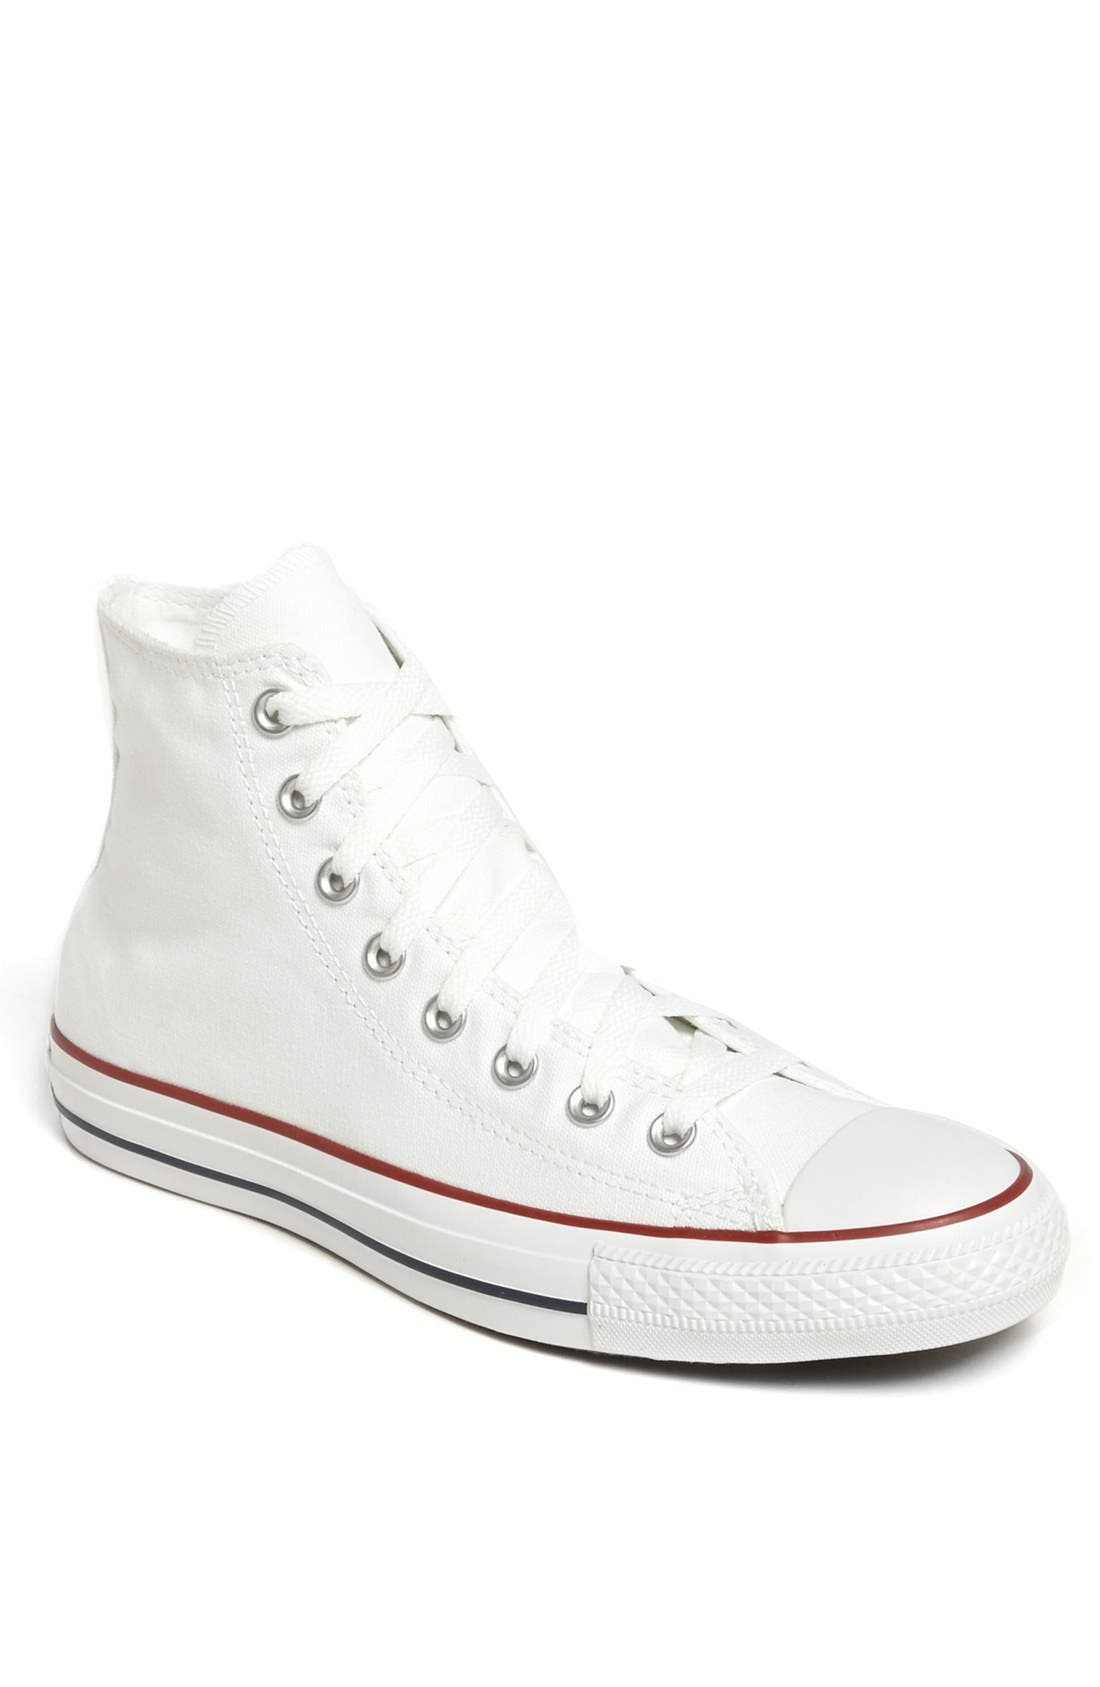 Alternate Image 1 Selected - Converse Chuck Taylor® High Top Sneaker